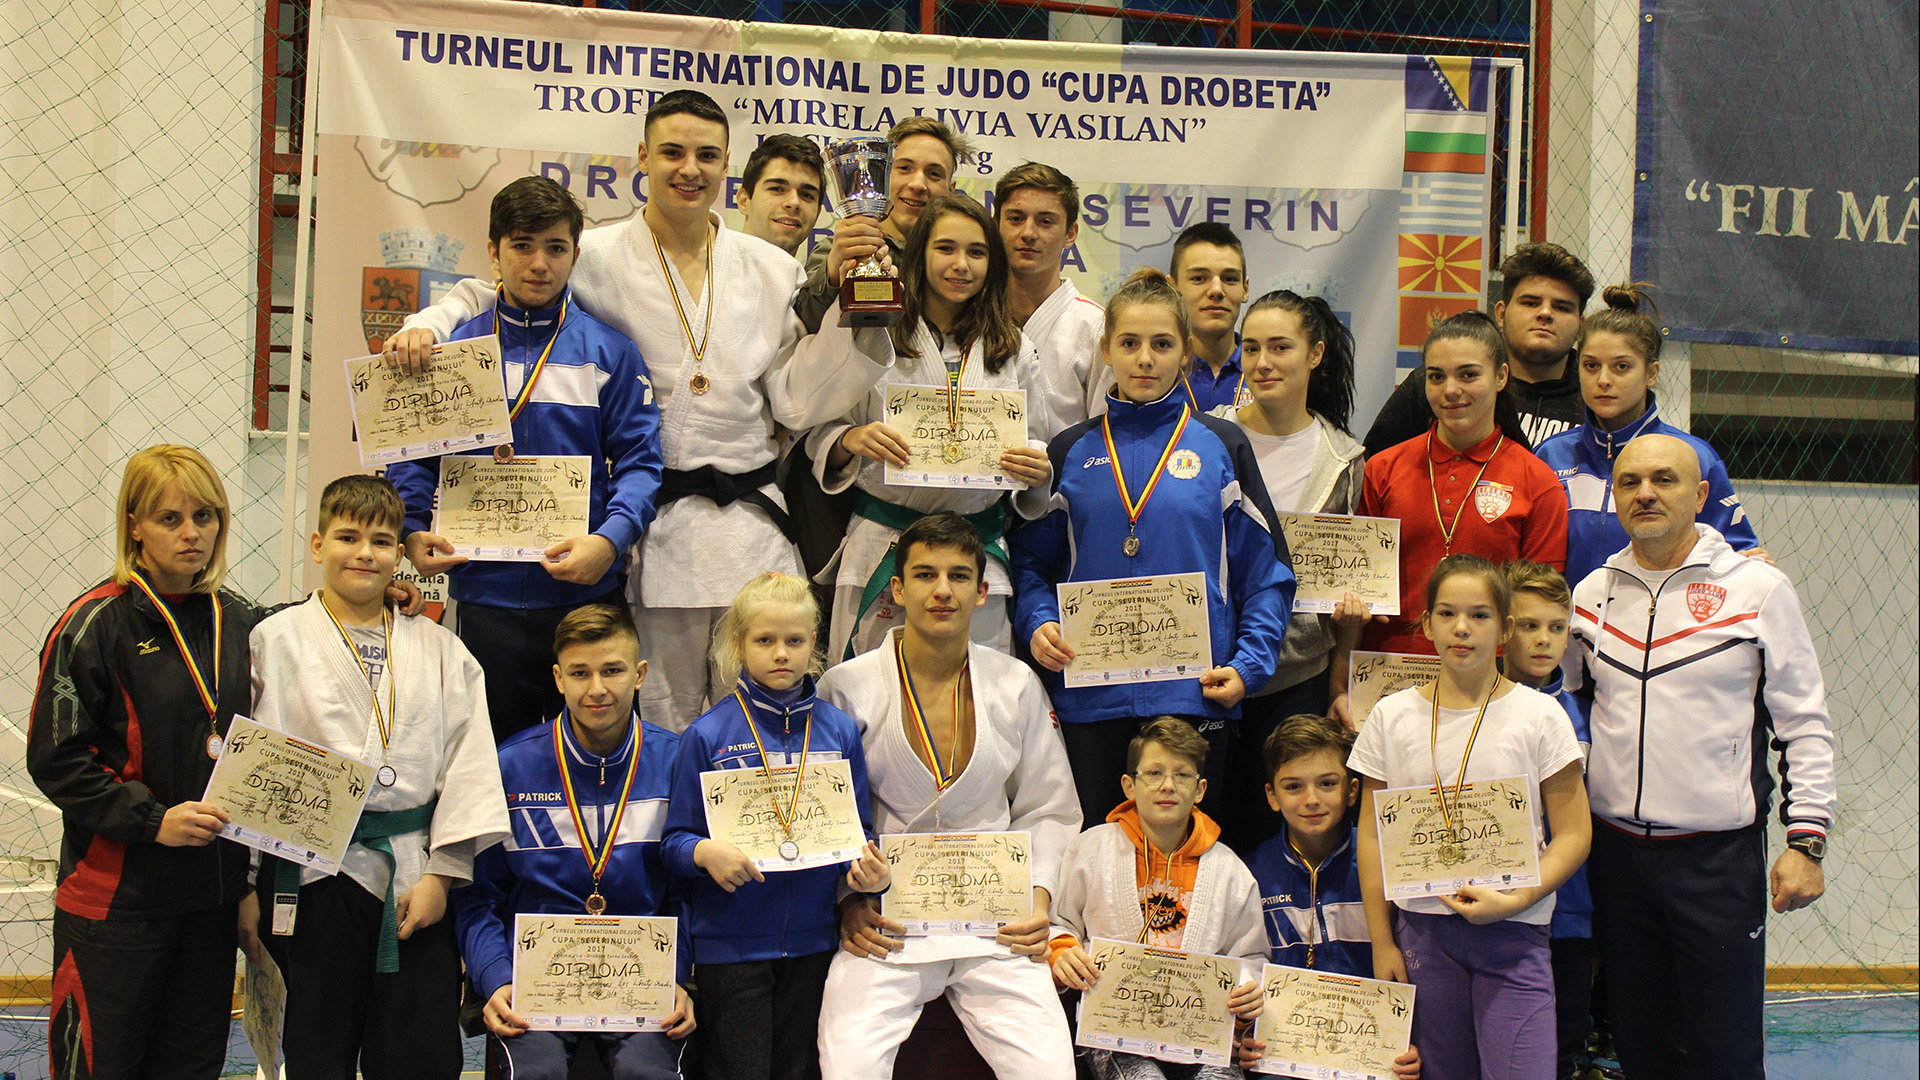 Turneu International de Judo – Cupa Severinului 2017, Ed. a VI-a, 27-29 ian, Dr. Tr. Severin